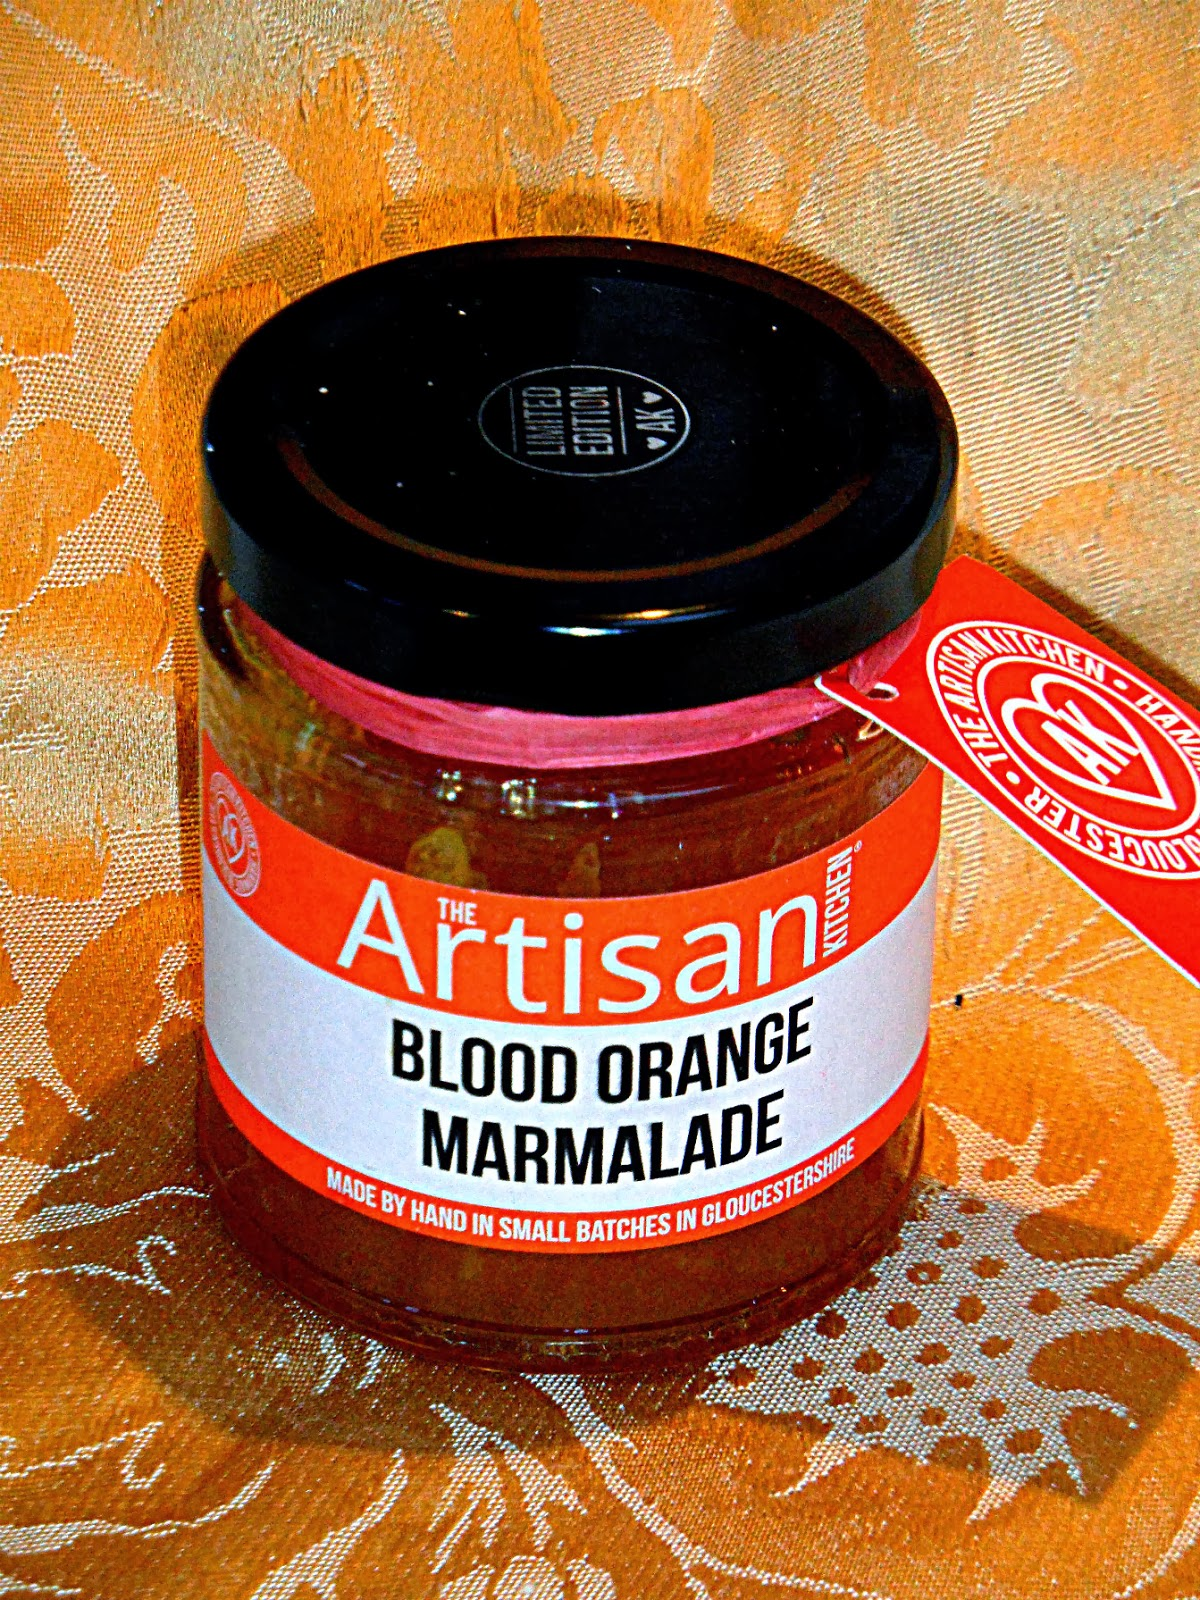 orange marmalade world market sicilian blood orange marmalade recipe ...